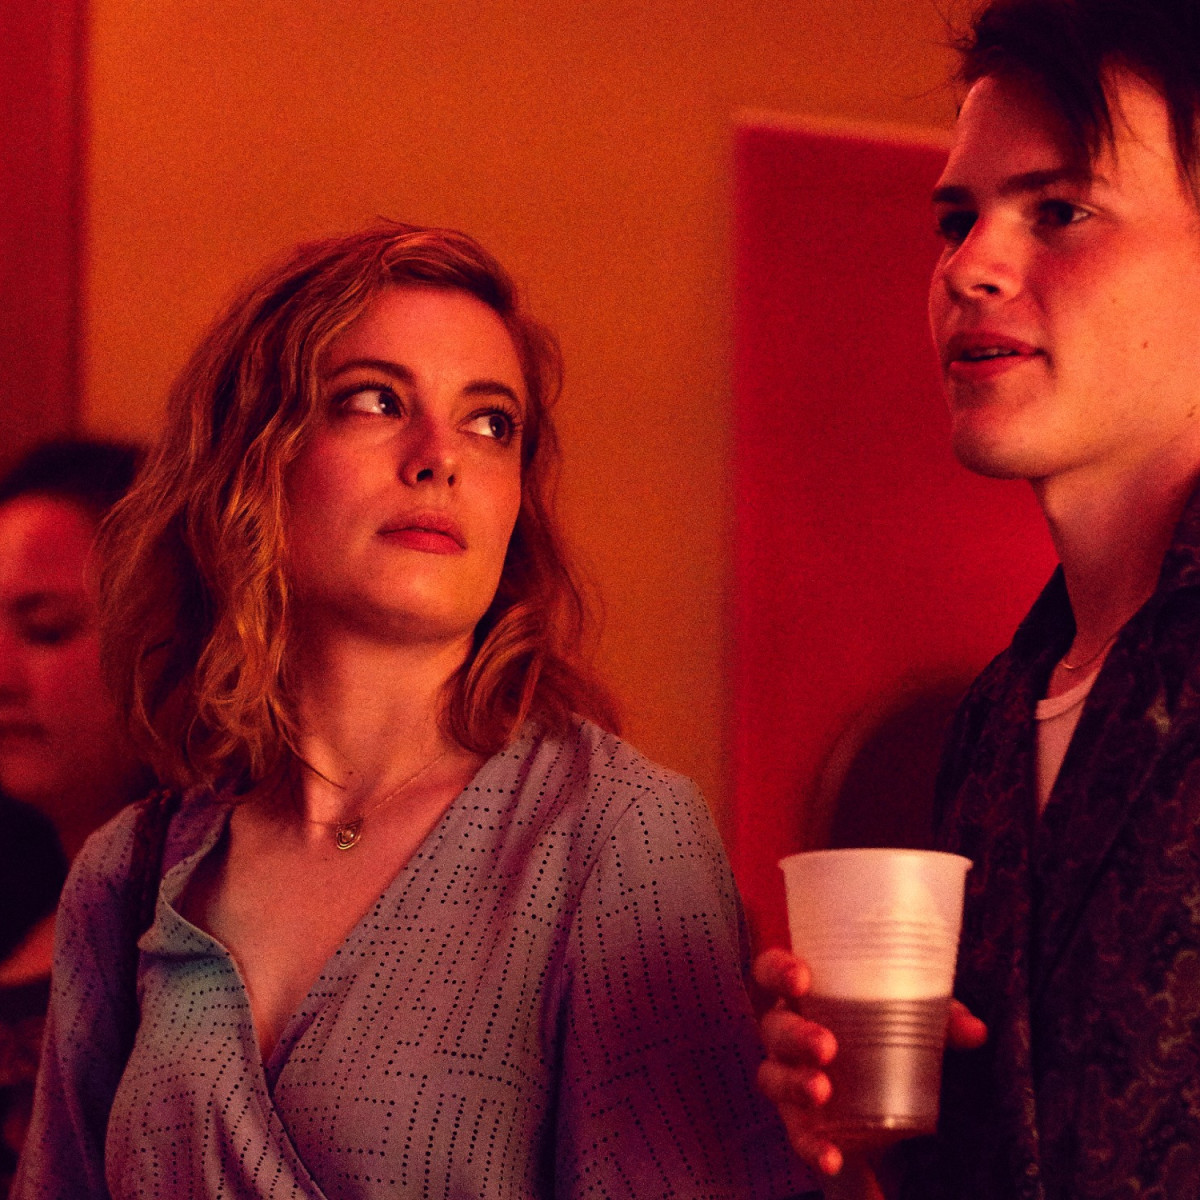 Gillian Jacobs and Josh Wiggins in I Used to Go Here